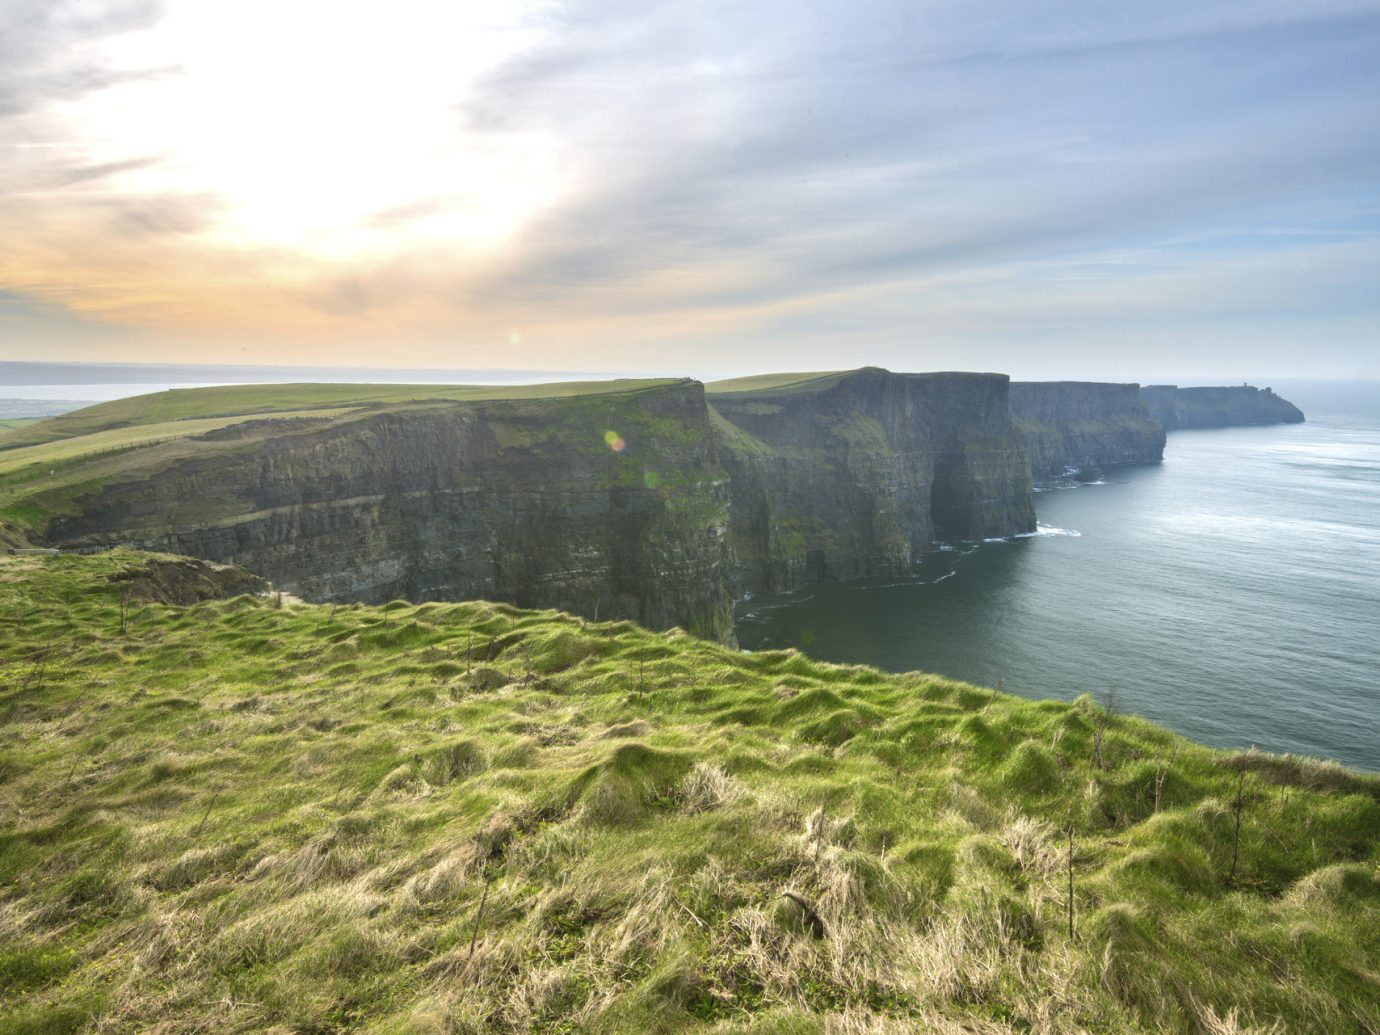 Offbeat grass sky outdoor water Nature Coast cliff hill landform geographical feature atmospheric phenomenon Sea body of water green shore horizon Ocean grassy terrain loch cloud reservoir bay hillside landscape cape fjord waterway lush overlooking rock pasture day highland